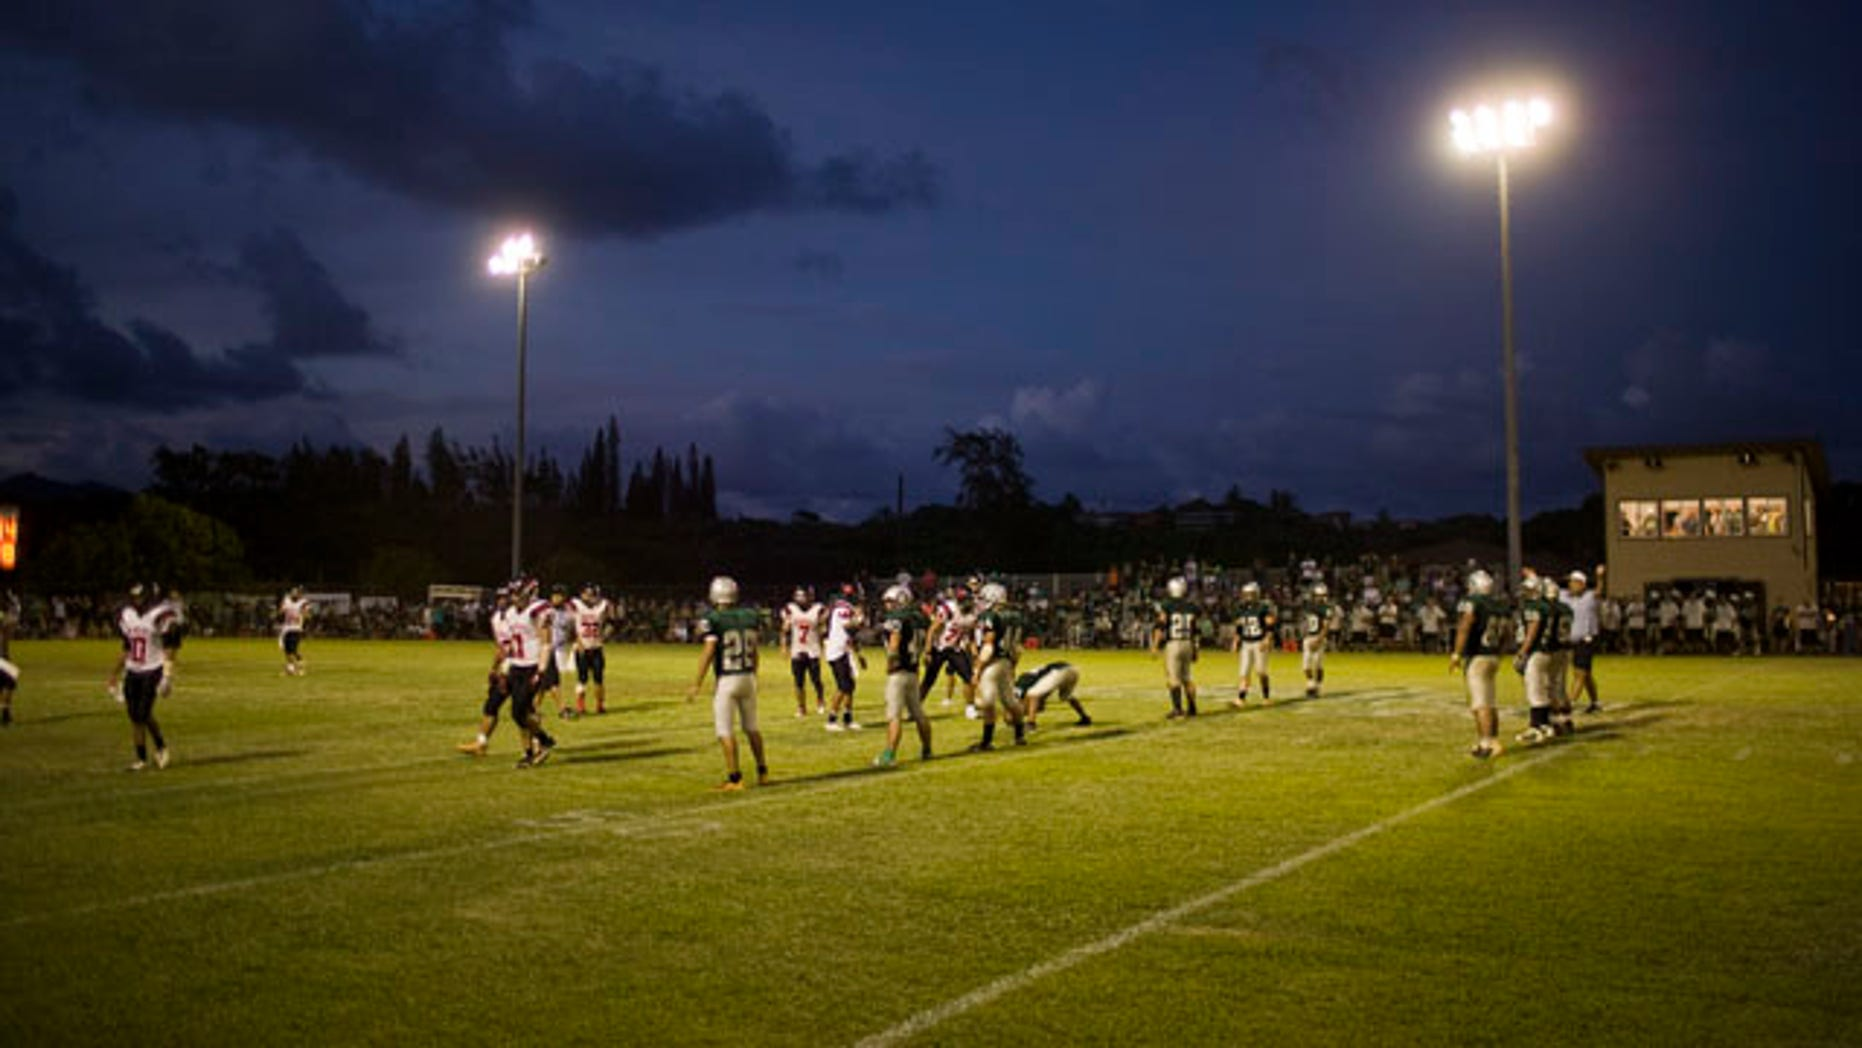 Oct. 16, 2010: Stadium lights shine down on a high school football game in Kapaa, Hawaii on the island of Kauai. Kauai high school football games, traditionally held on Friday nights, are now being played on Saturday afternoon due to a need to protect a threatened seabird which becomes disoriented during flight because of the bright stadium lights. The change has unsettled the community.